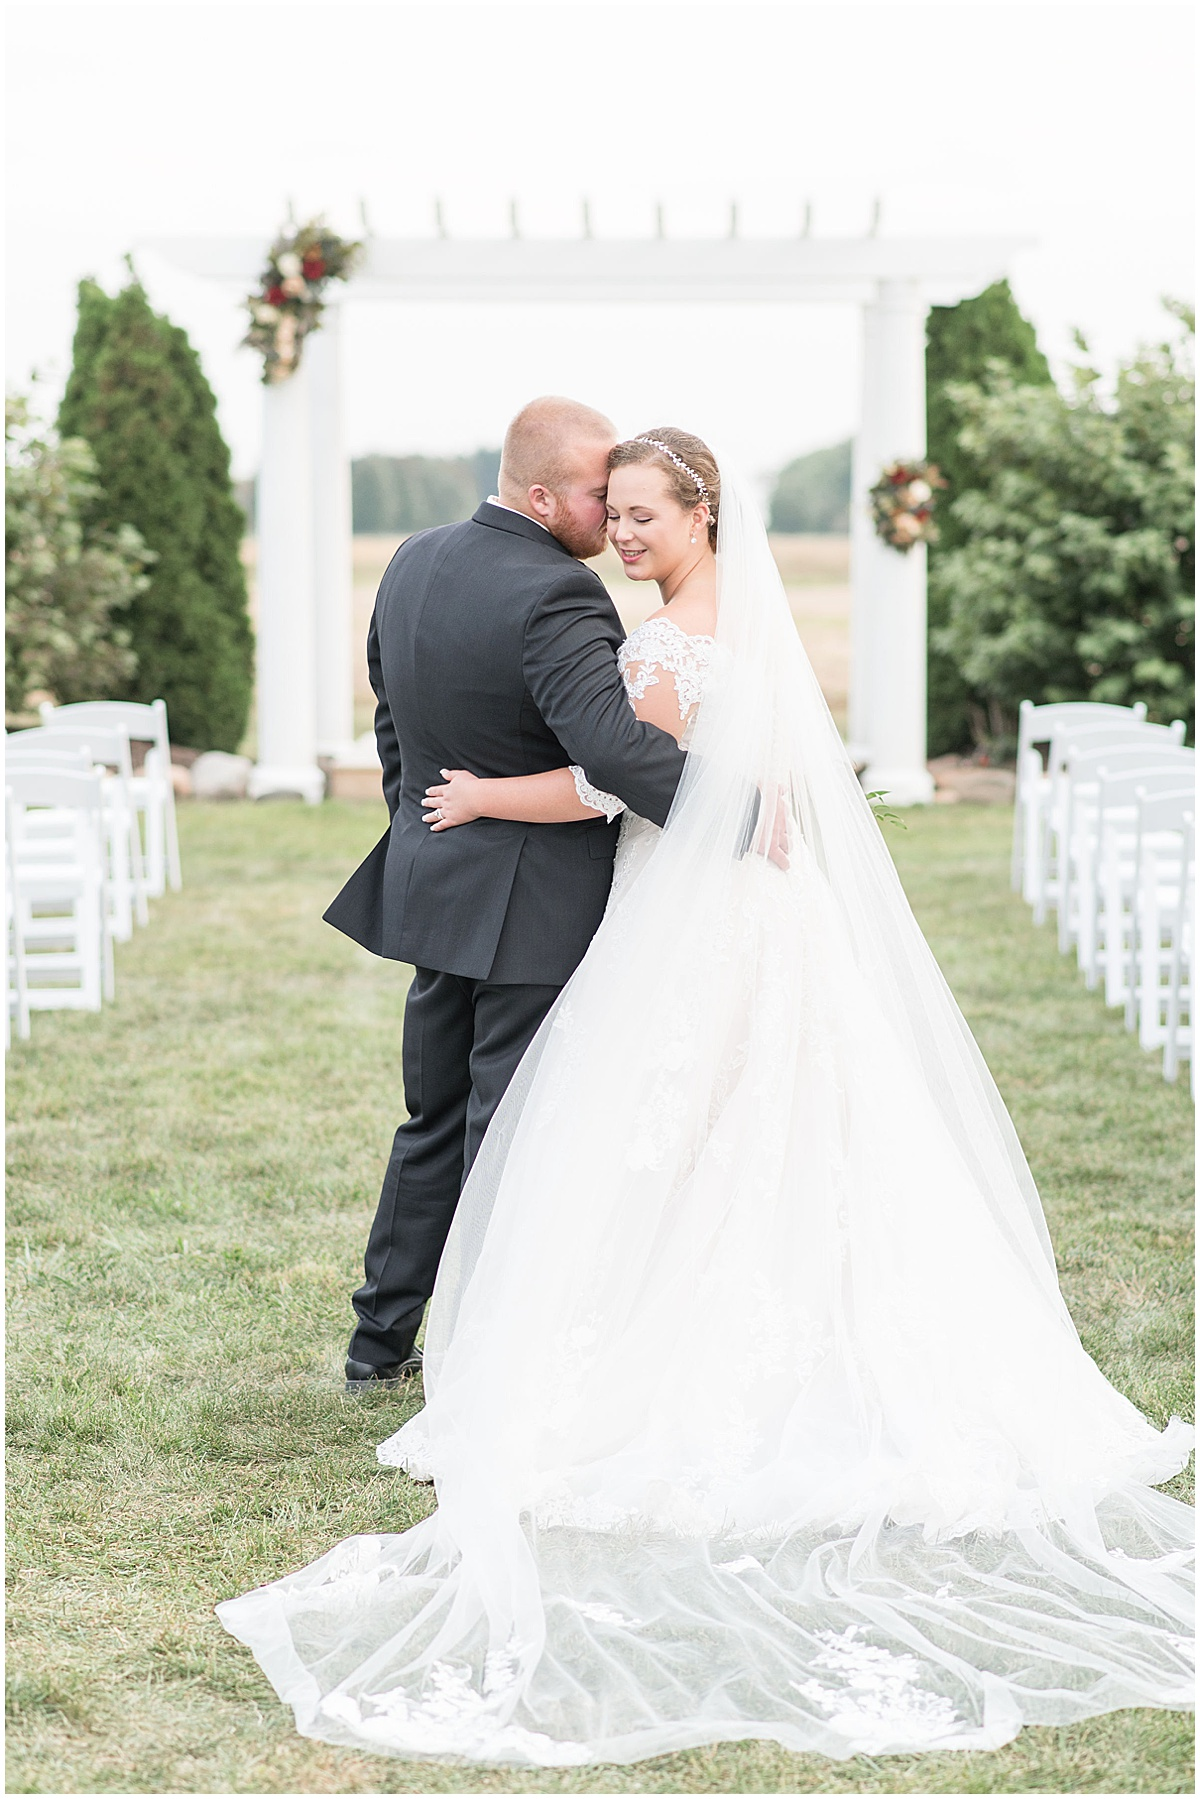 Just married photos after Meadow Springs Manor wedding in Francesville, Indiana by Victoria Rayburn Photography